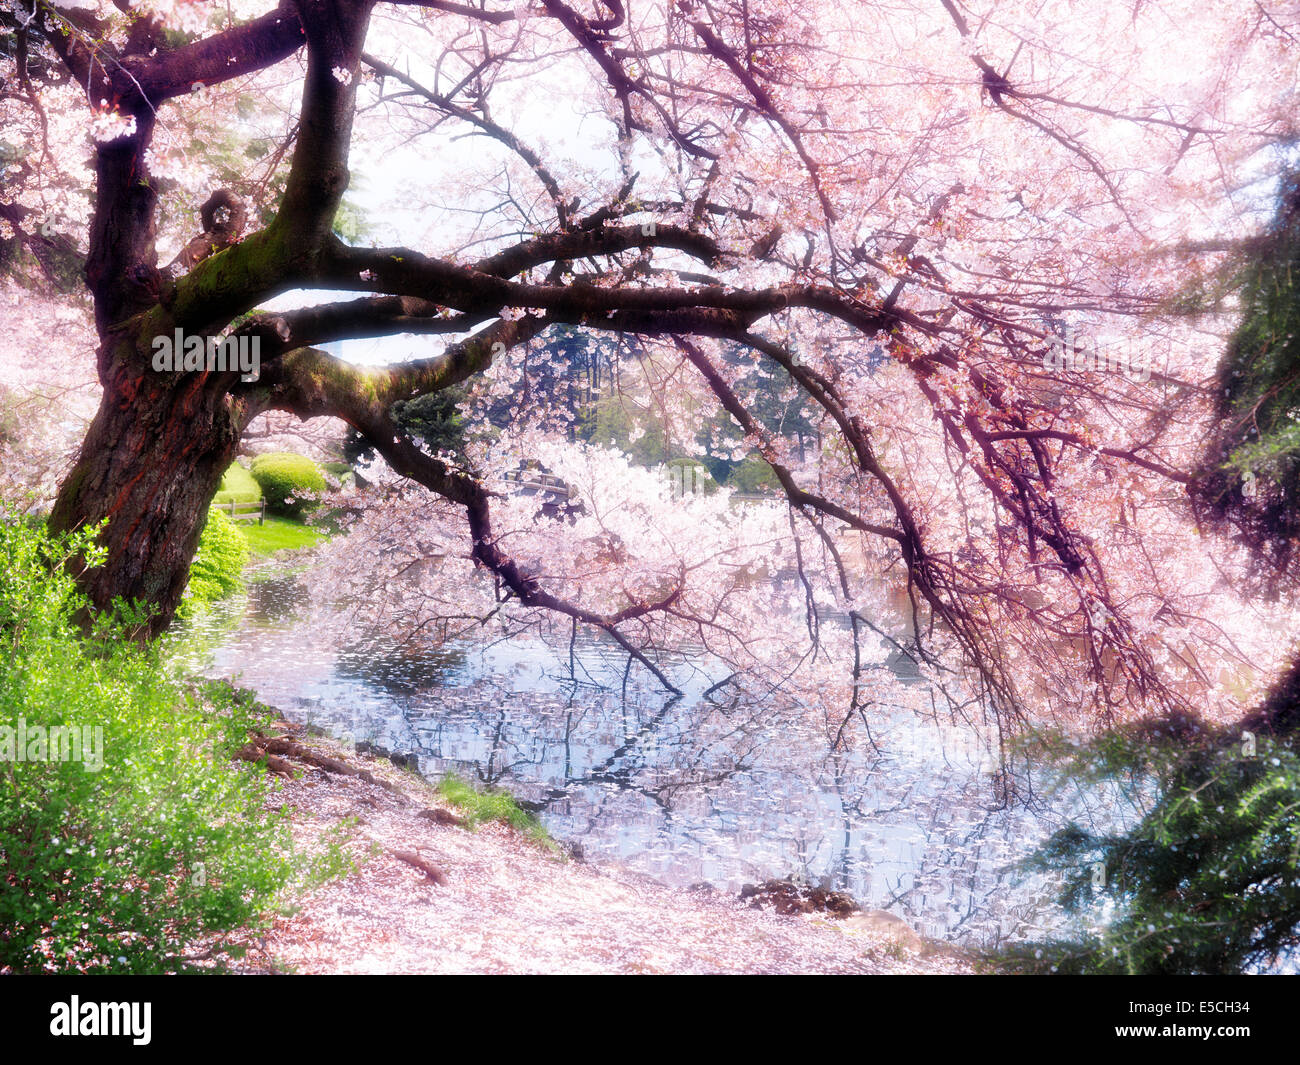 Blossoming cherry tree branches touching water with artistic light bloom effect. Shinjuku Gyoen National Garden in Tokyo, Japan. Stock Photo